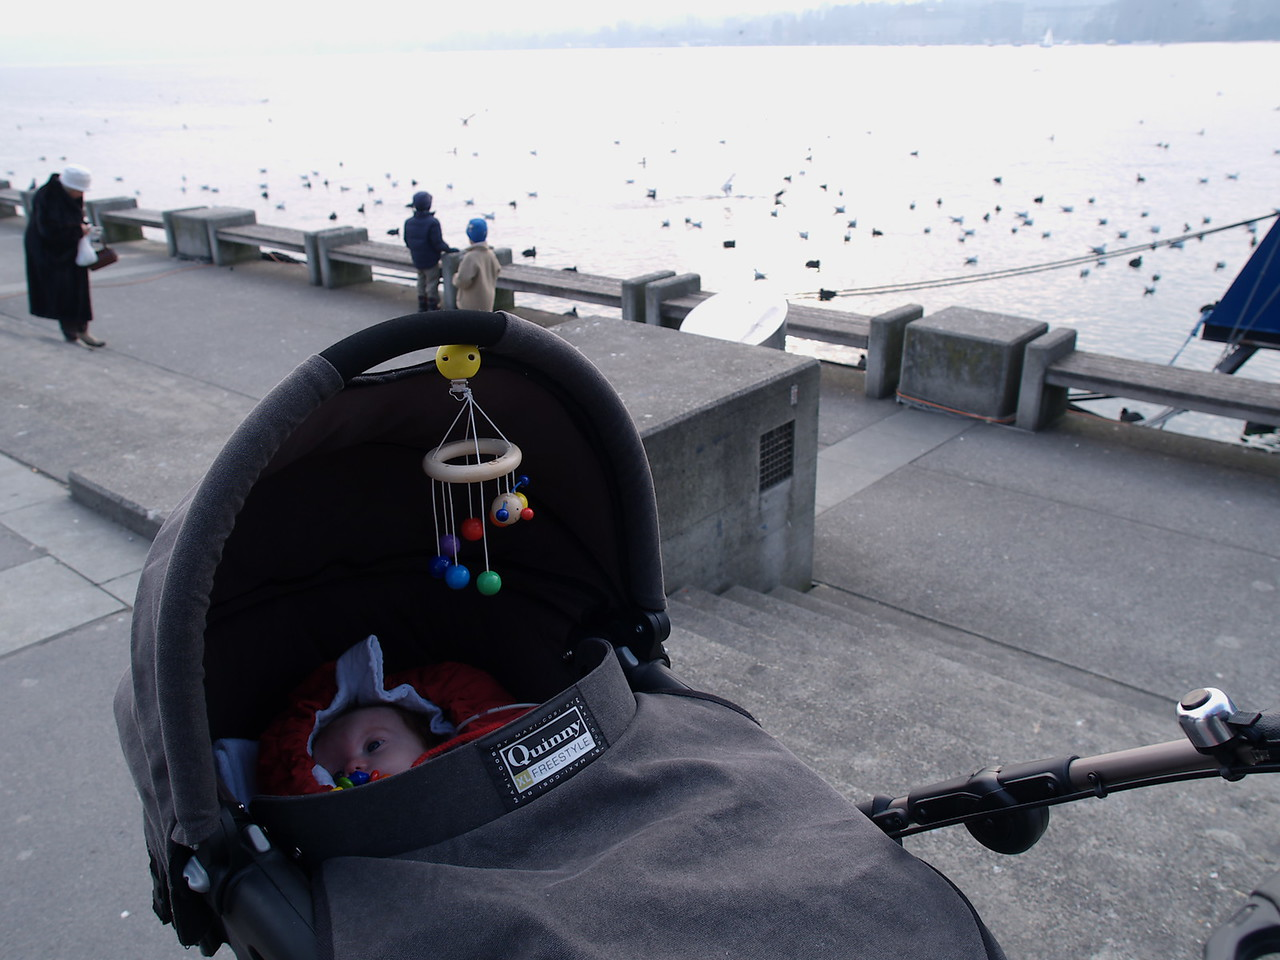 Sunday 29th January 2006 - We show Cai the lake of Zürich. I was hoping to make a better picture, but Cai was getting restless and needed sucking off a lot so we had to take a snapshot and run.<br /> <br /> Well after a weeks deliberation we have pretty much decided that we should go with the recommended path of Cai having another operation to correct his reflux so he won't be coming home as we had hoped and planned for on the 4th of February. He will need a minimum of five weeks in hospital to recover from the next operation. We will move on to the next stage but it has been a bit stressfull at home this week with both Kerstin and myself not being in the best of moods. We speak to the doctors tomorrow to let them know what we have decided.